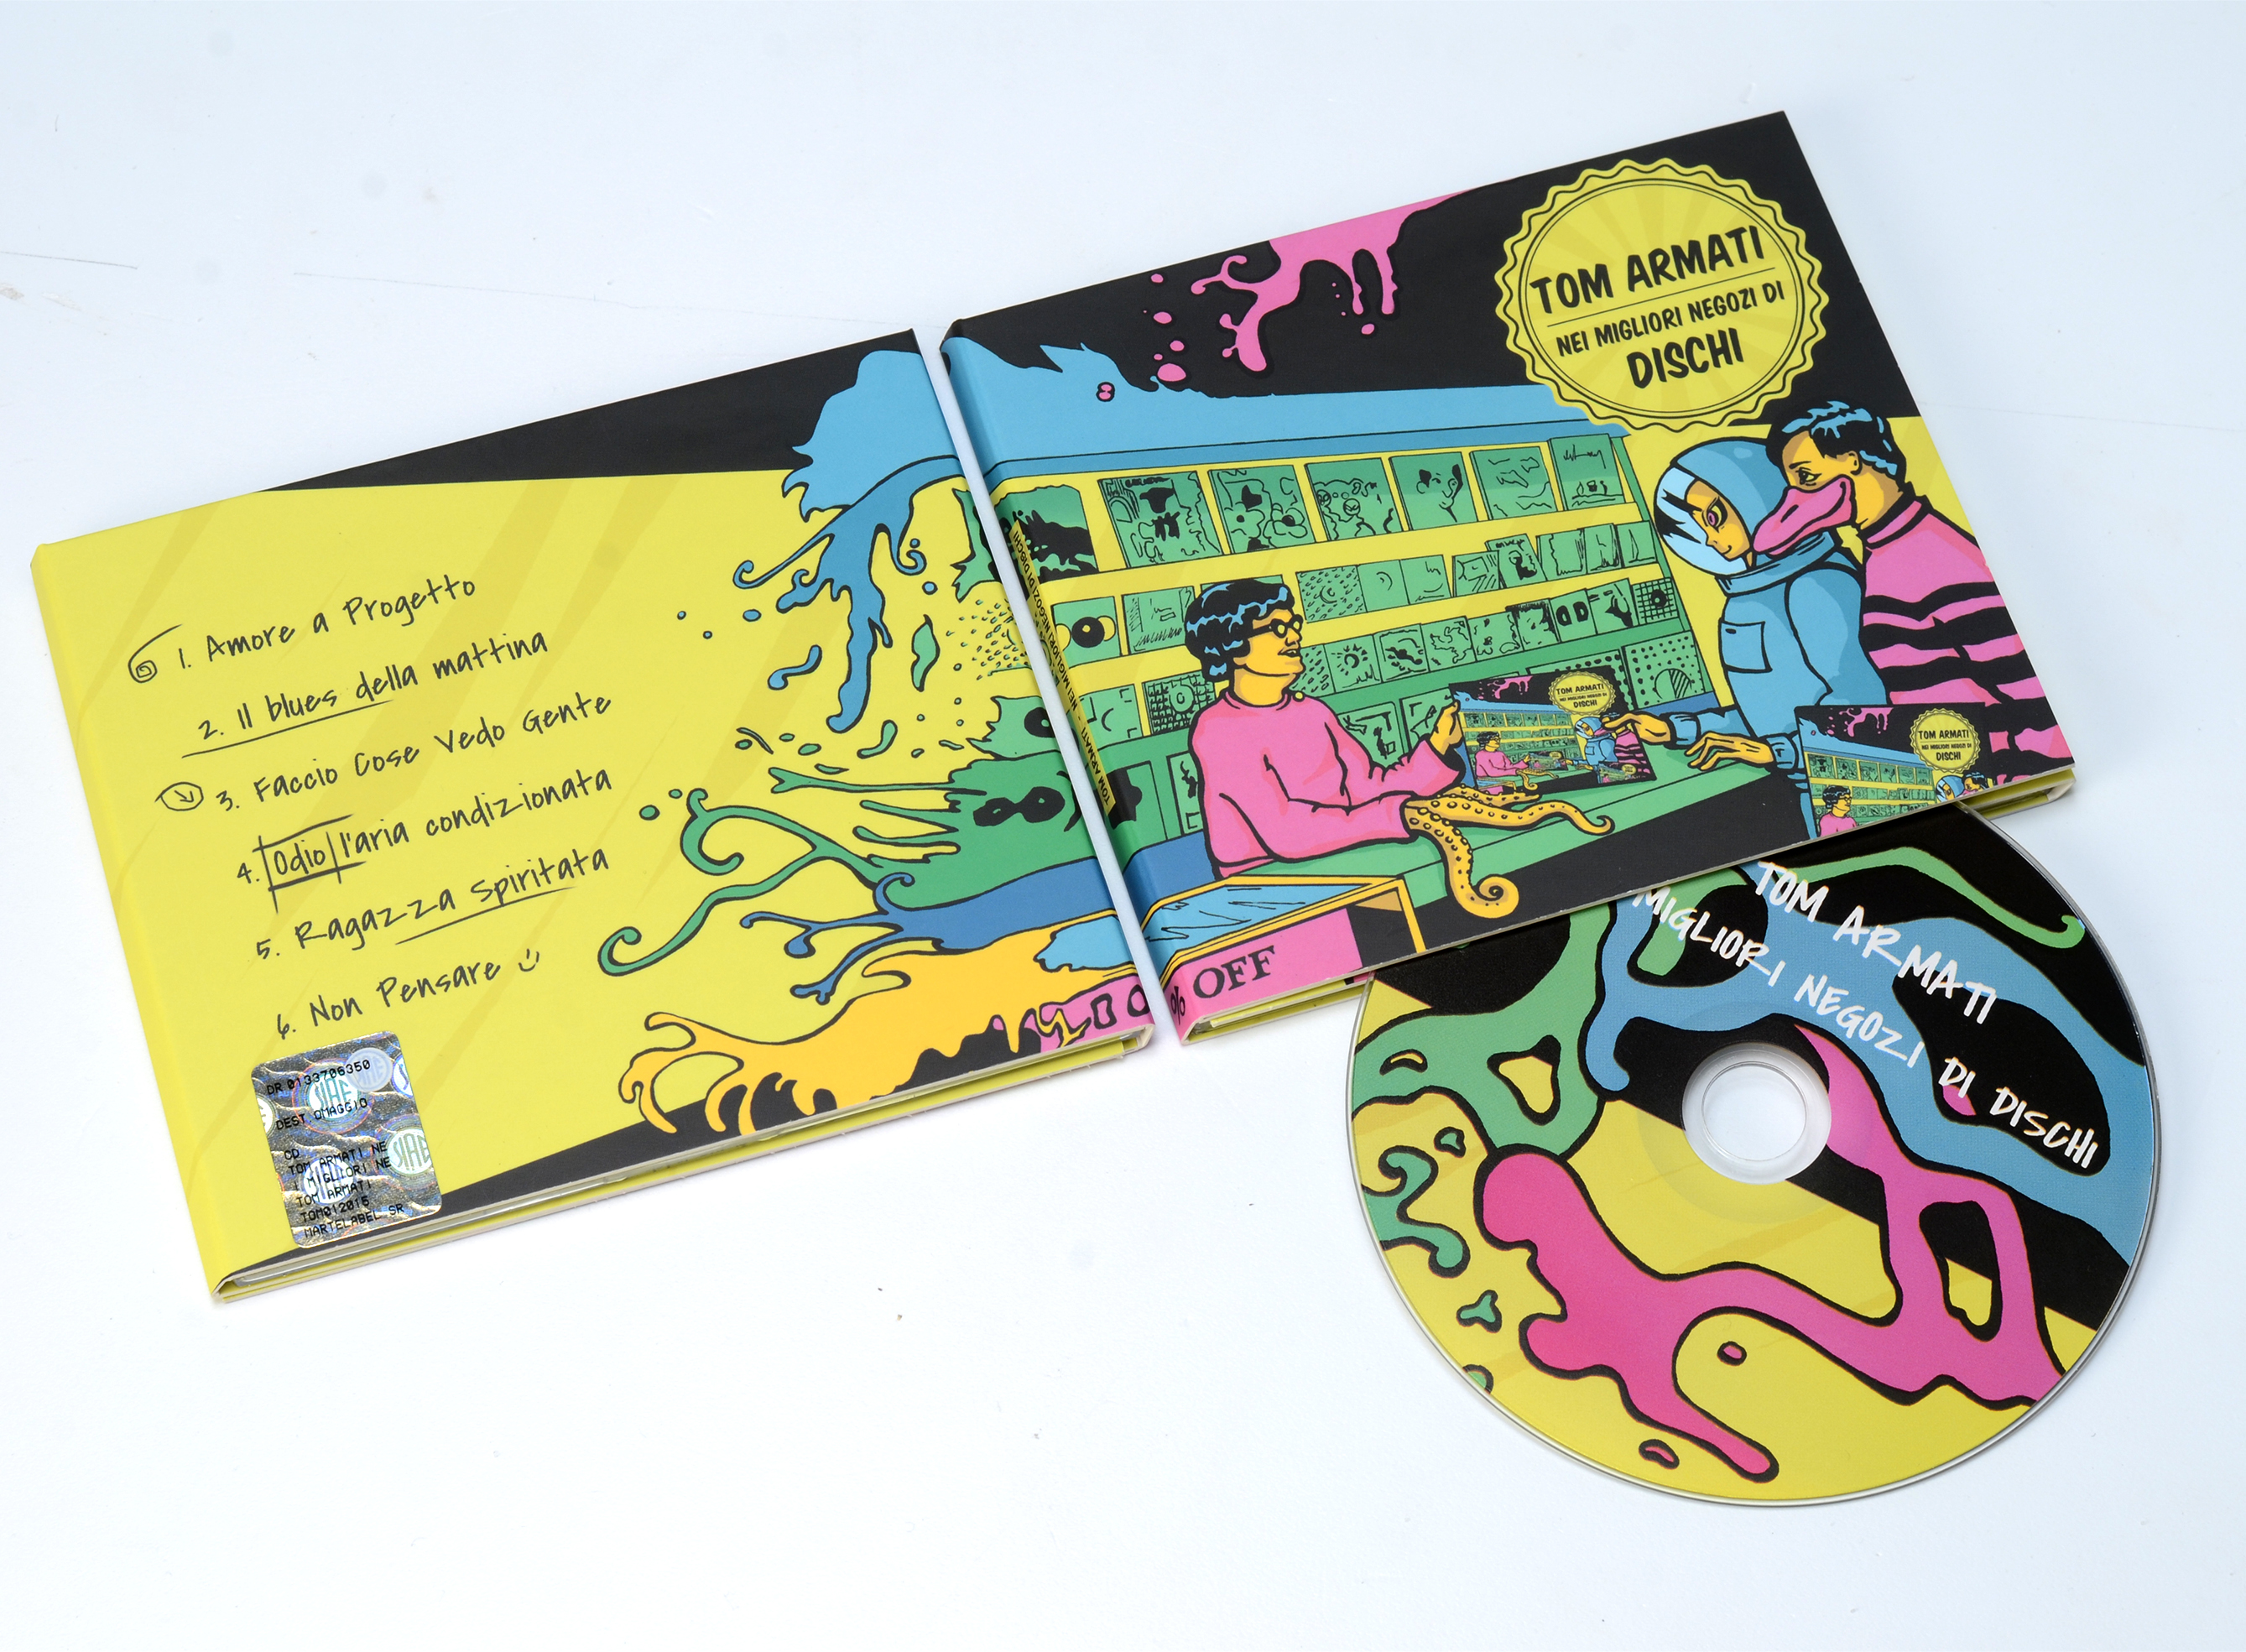 CD cover illustration